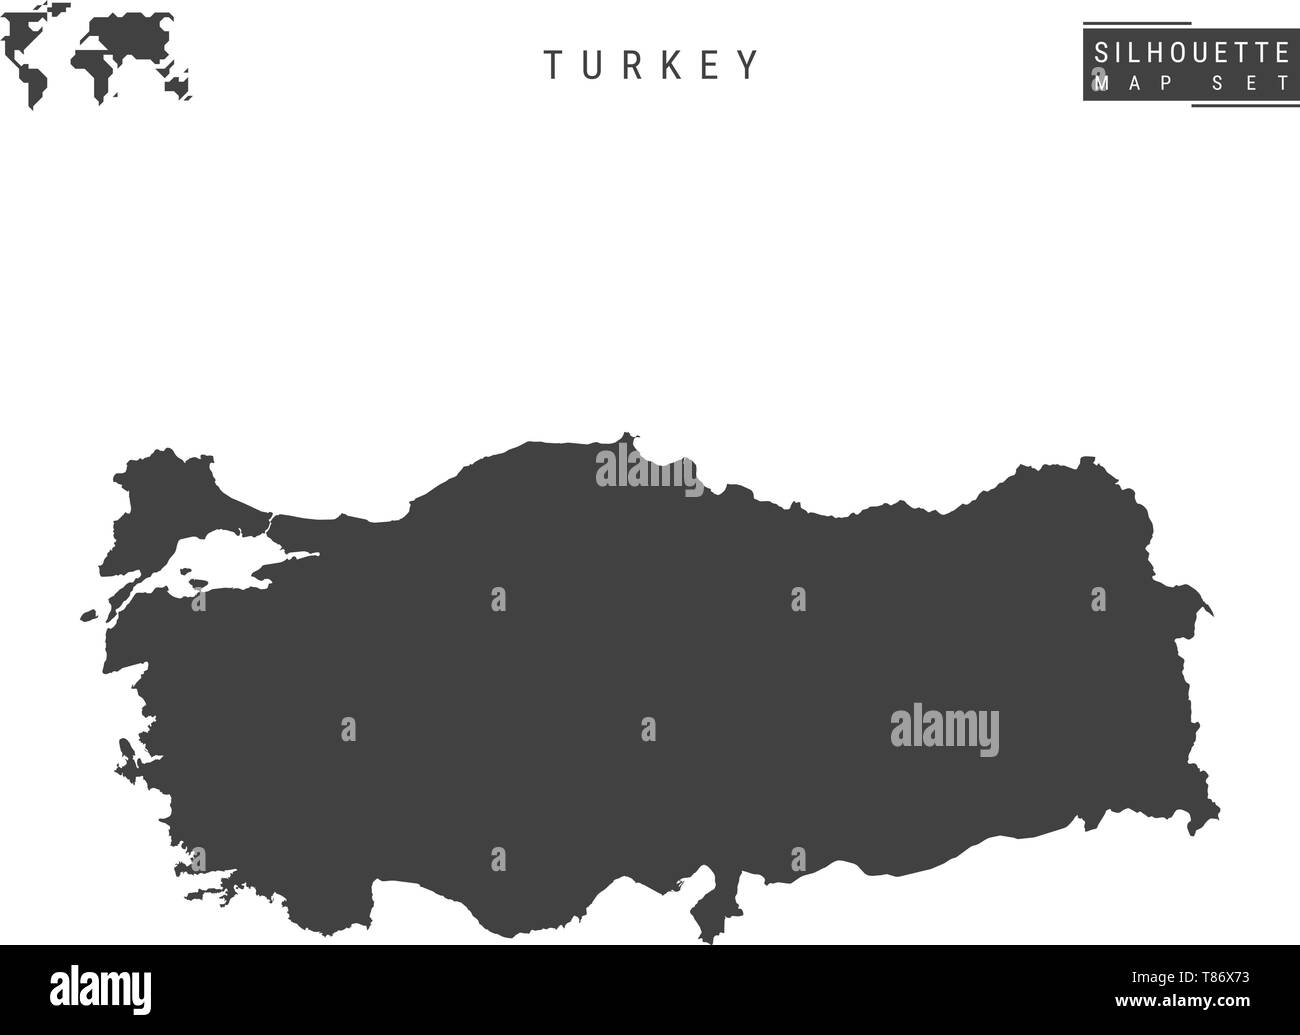 Turkey Blank Vector Map Isolated on White Background. High-Detailed Black Silhouette Map of Republic of Turkey. Stock Vector